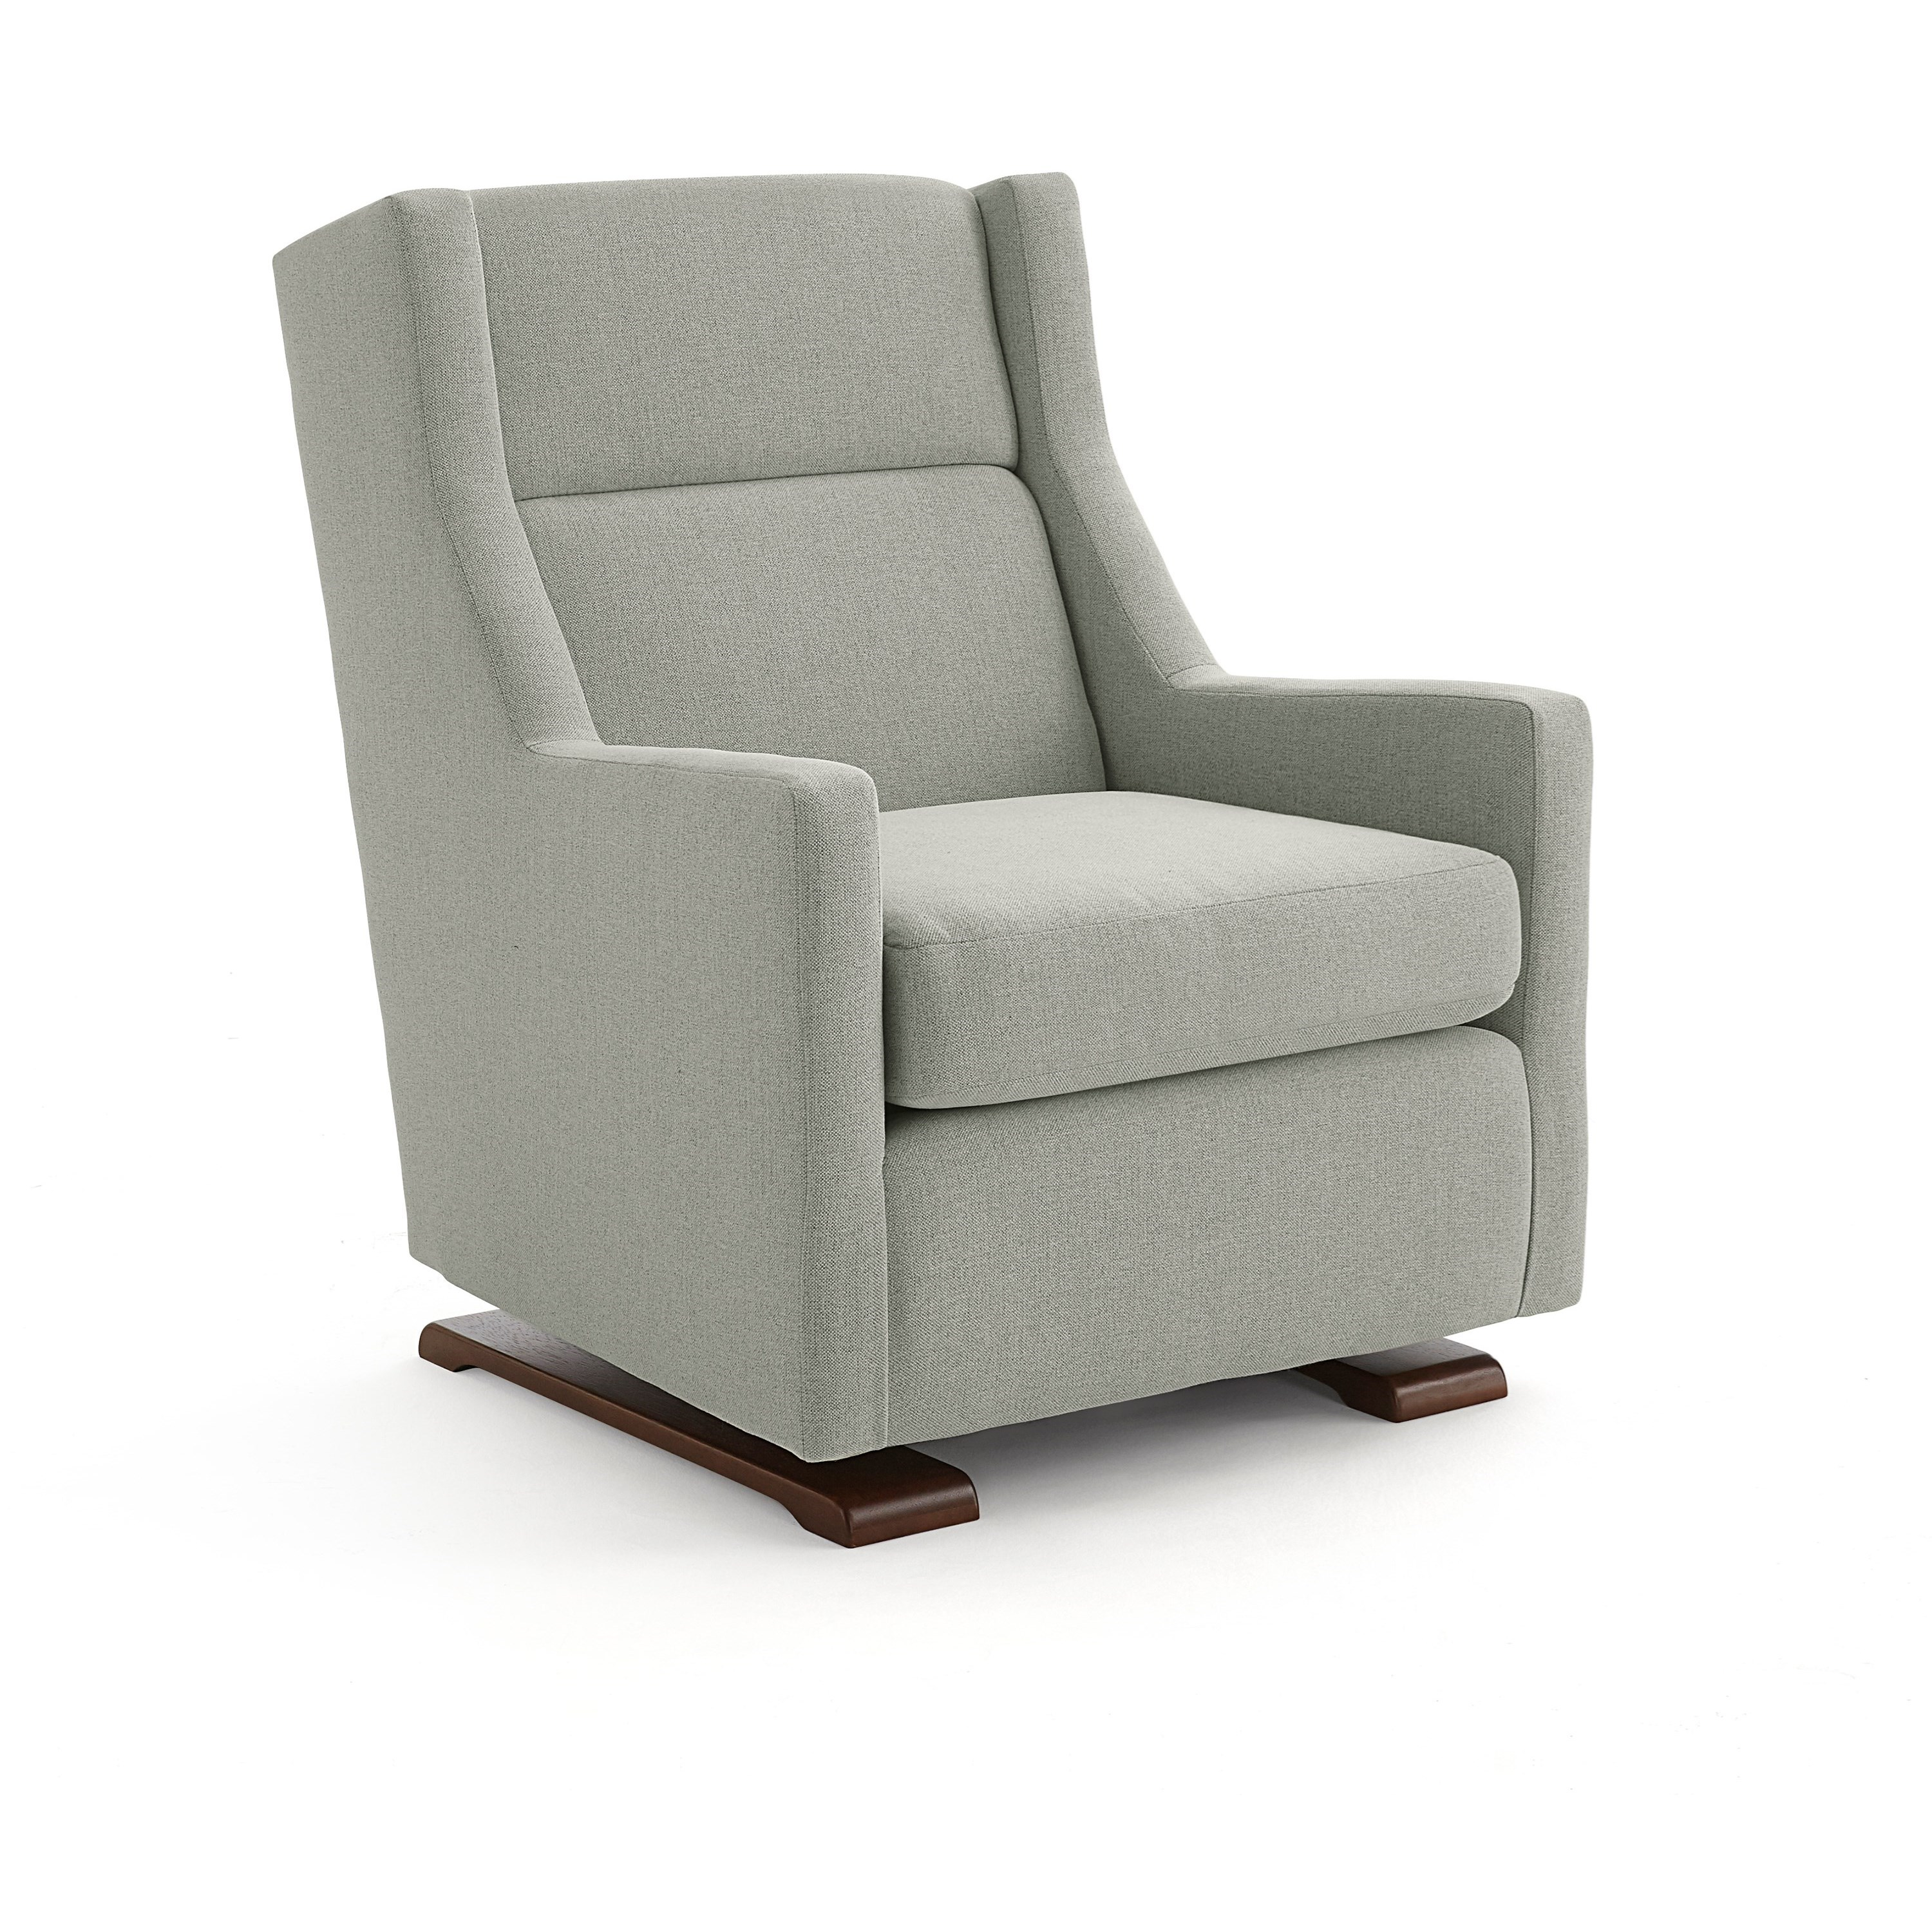 Gliding Chair Mandini Casual Swivel Gliding Chair With Wood Runners By Best Home Furnishings At Wayside Furniture